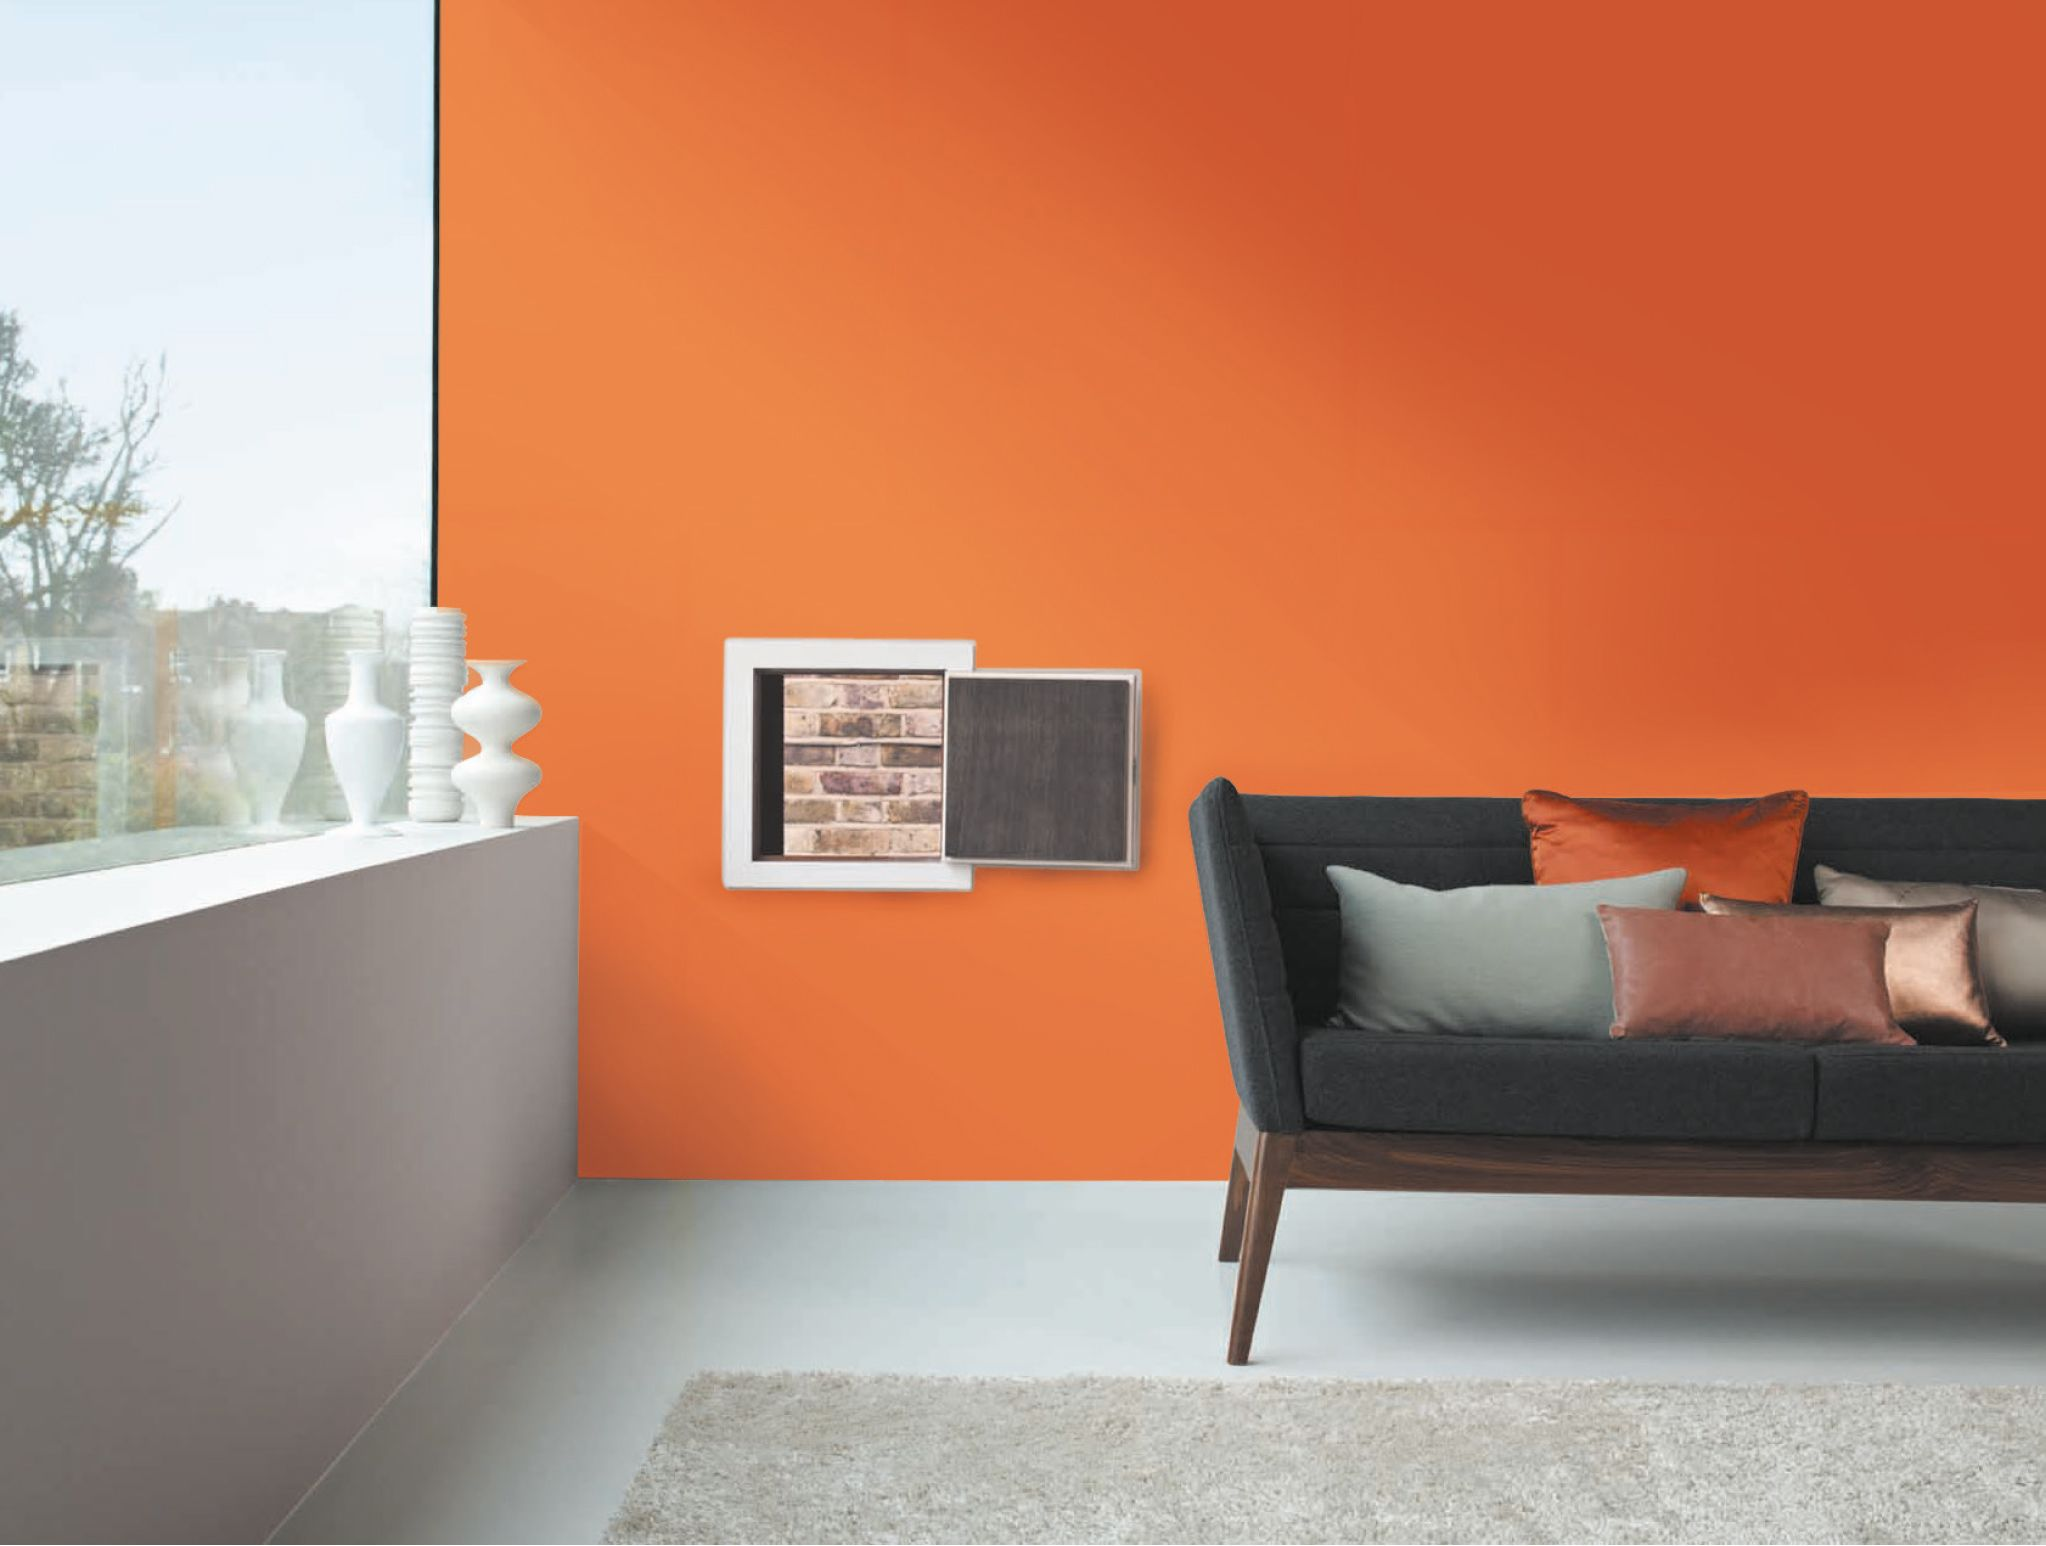 couleur de l 39 ann e 2015 dulux valentine l 39 orange confite. Black Bedroom Furniture Sets. Home Design Ideas